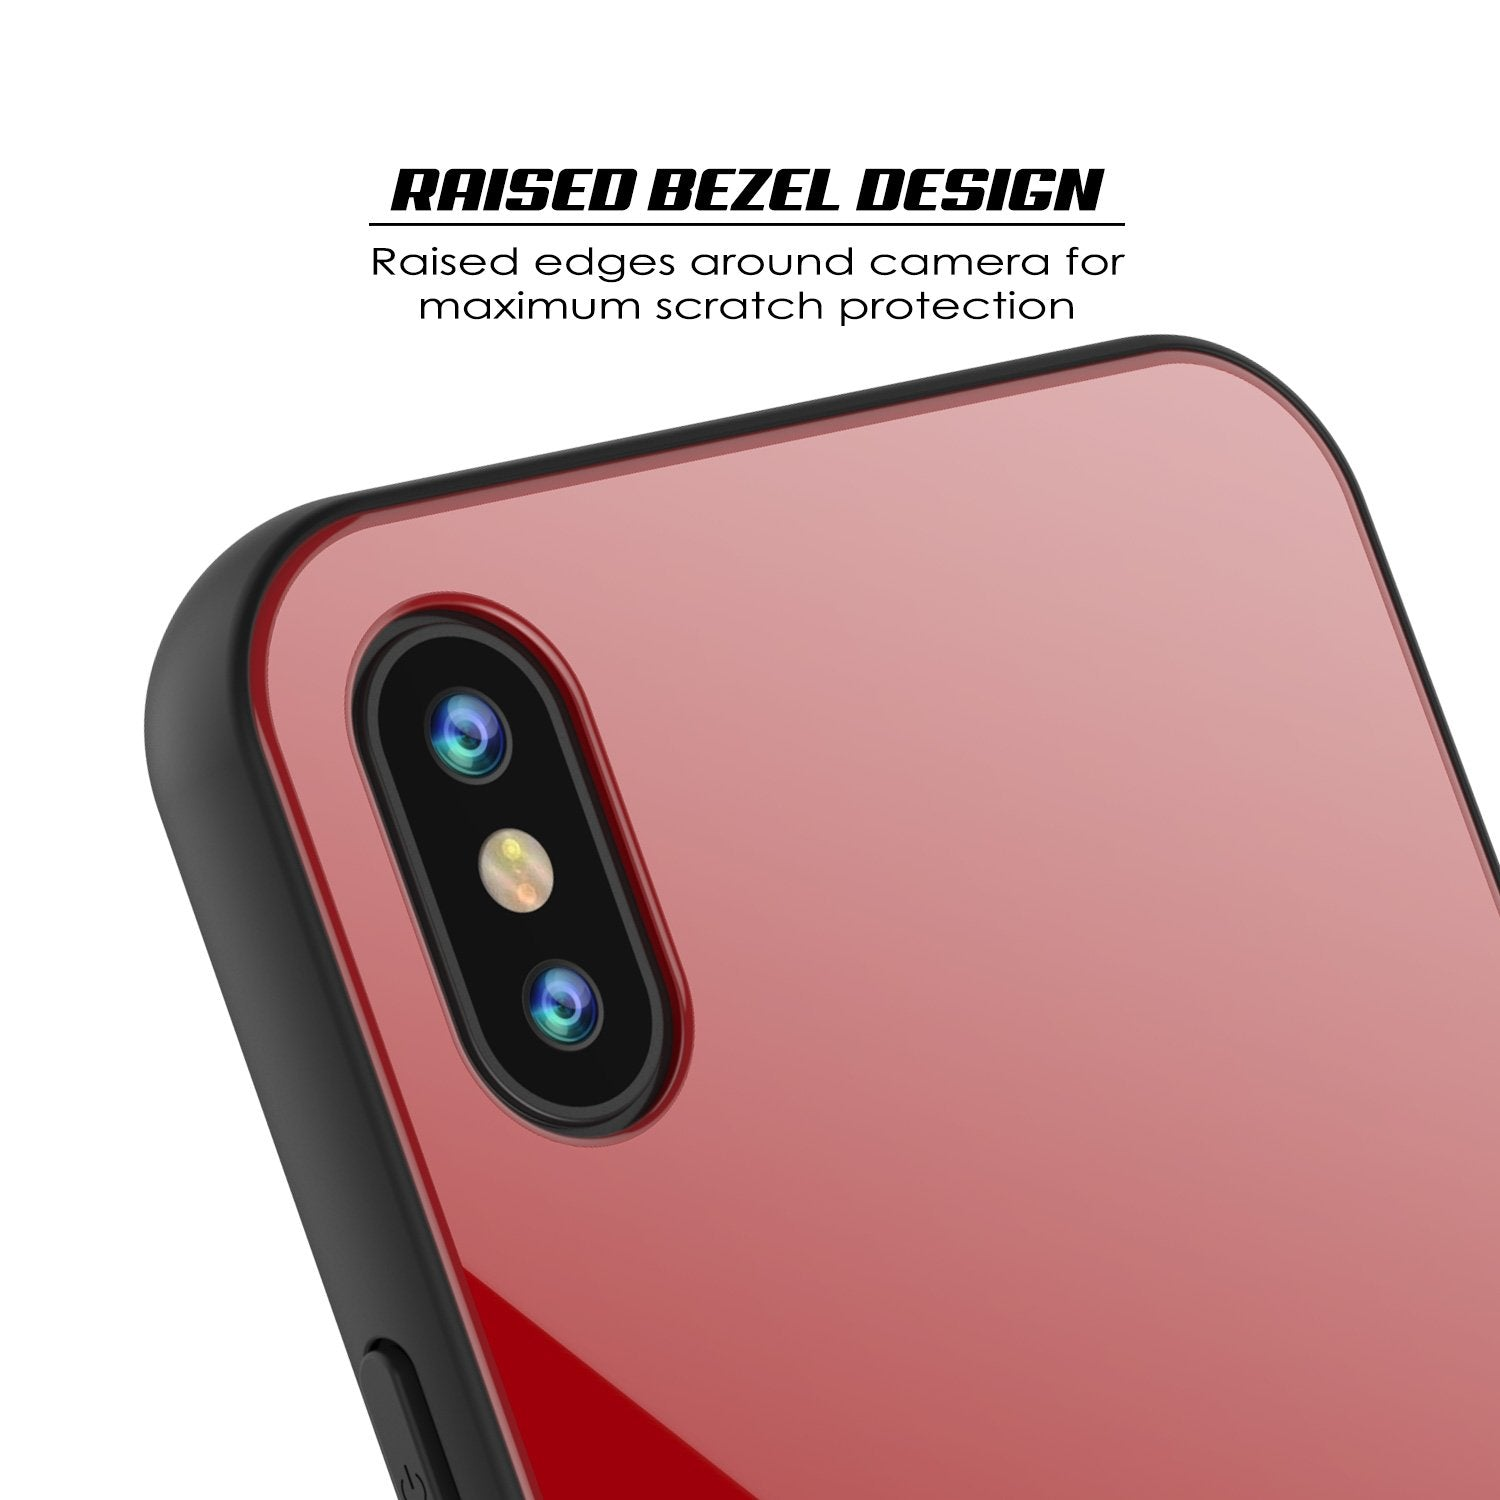 iPhone X Case, Punkcase GlassShield Ultra Thin Protectiv Cover, RED